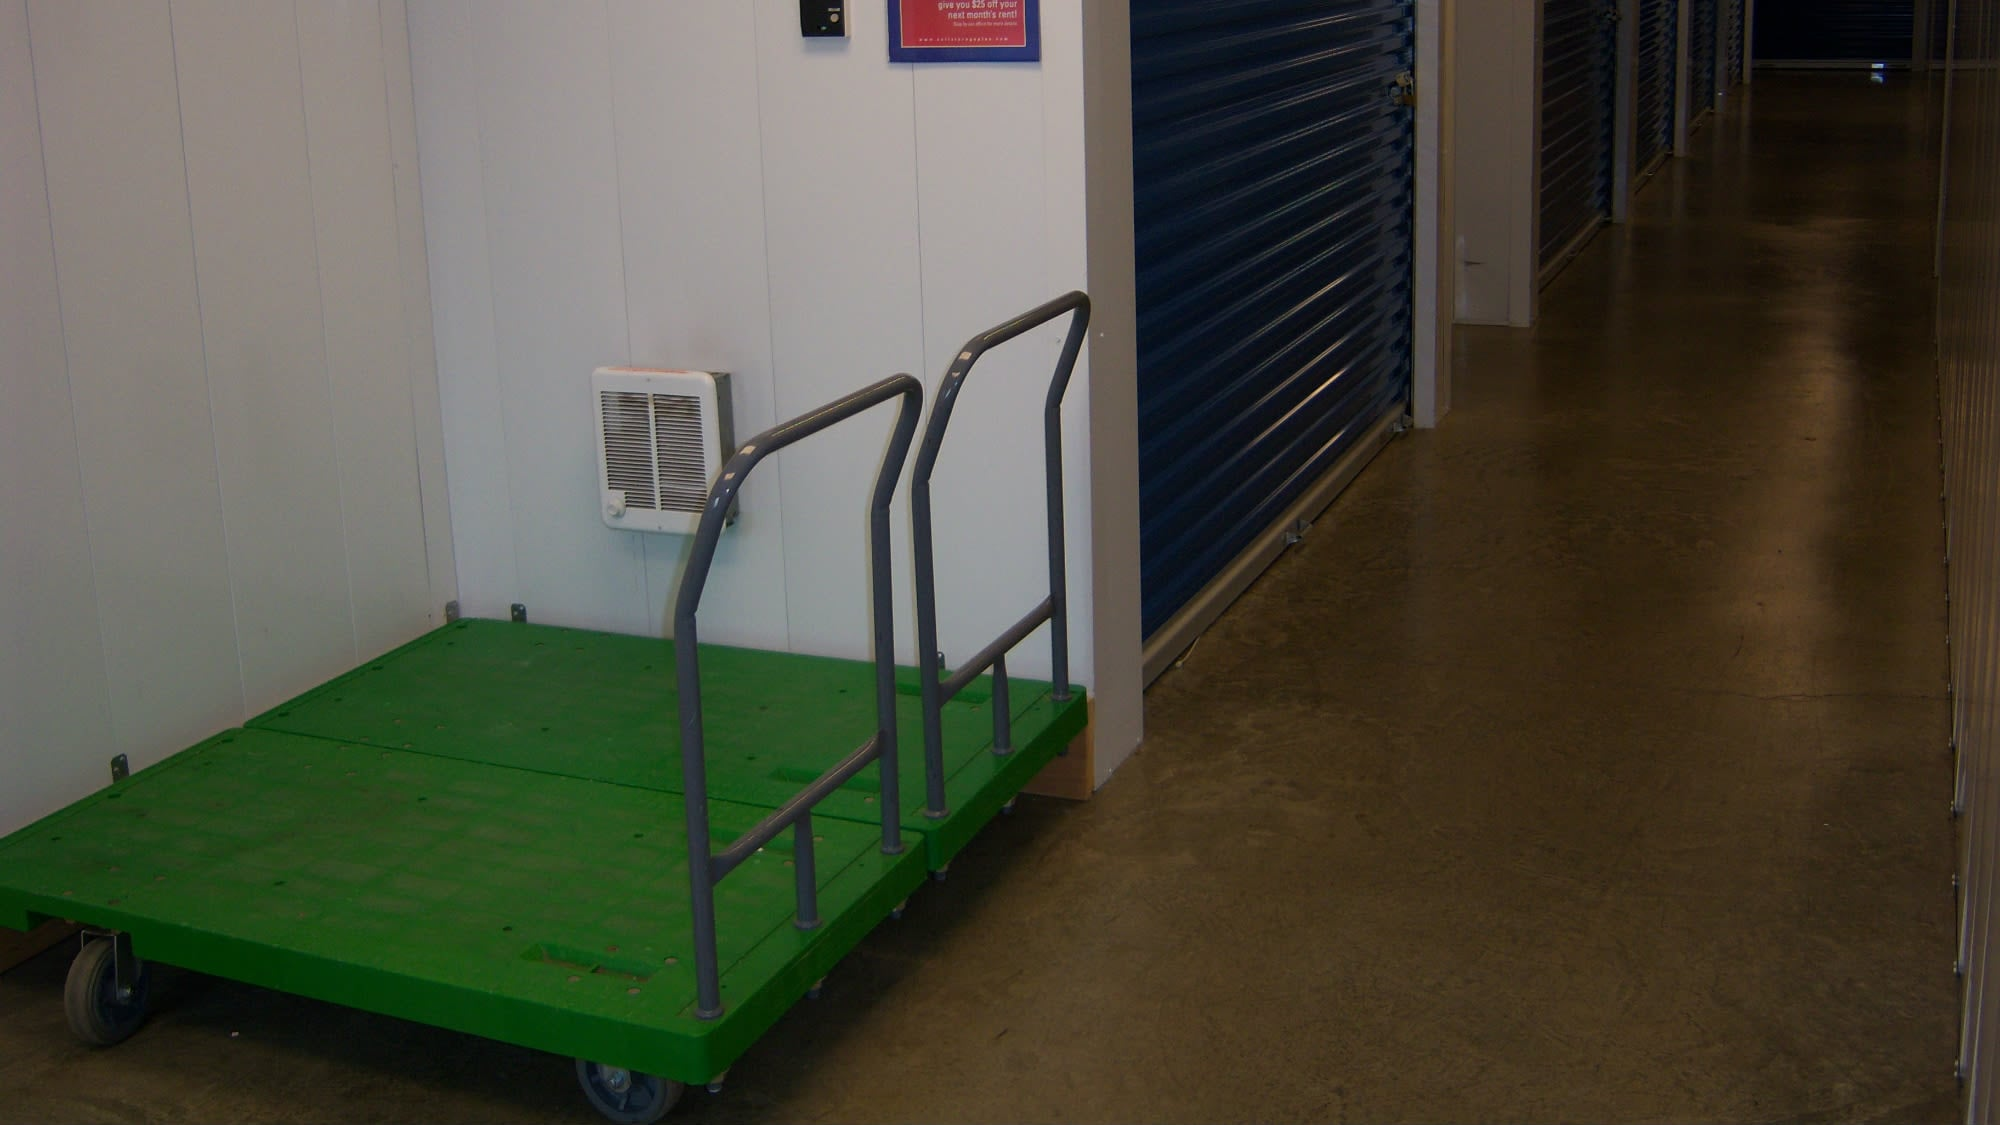 Carts available at Self Storage Plus in Manassas, VA